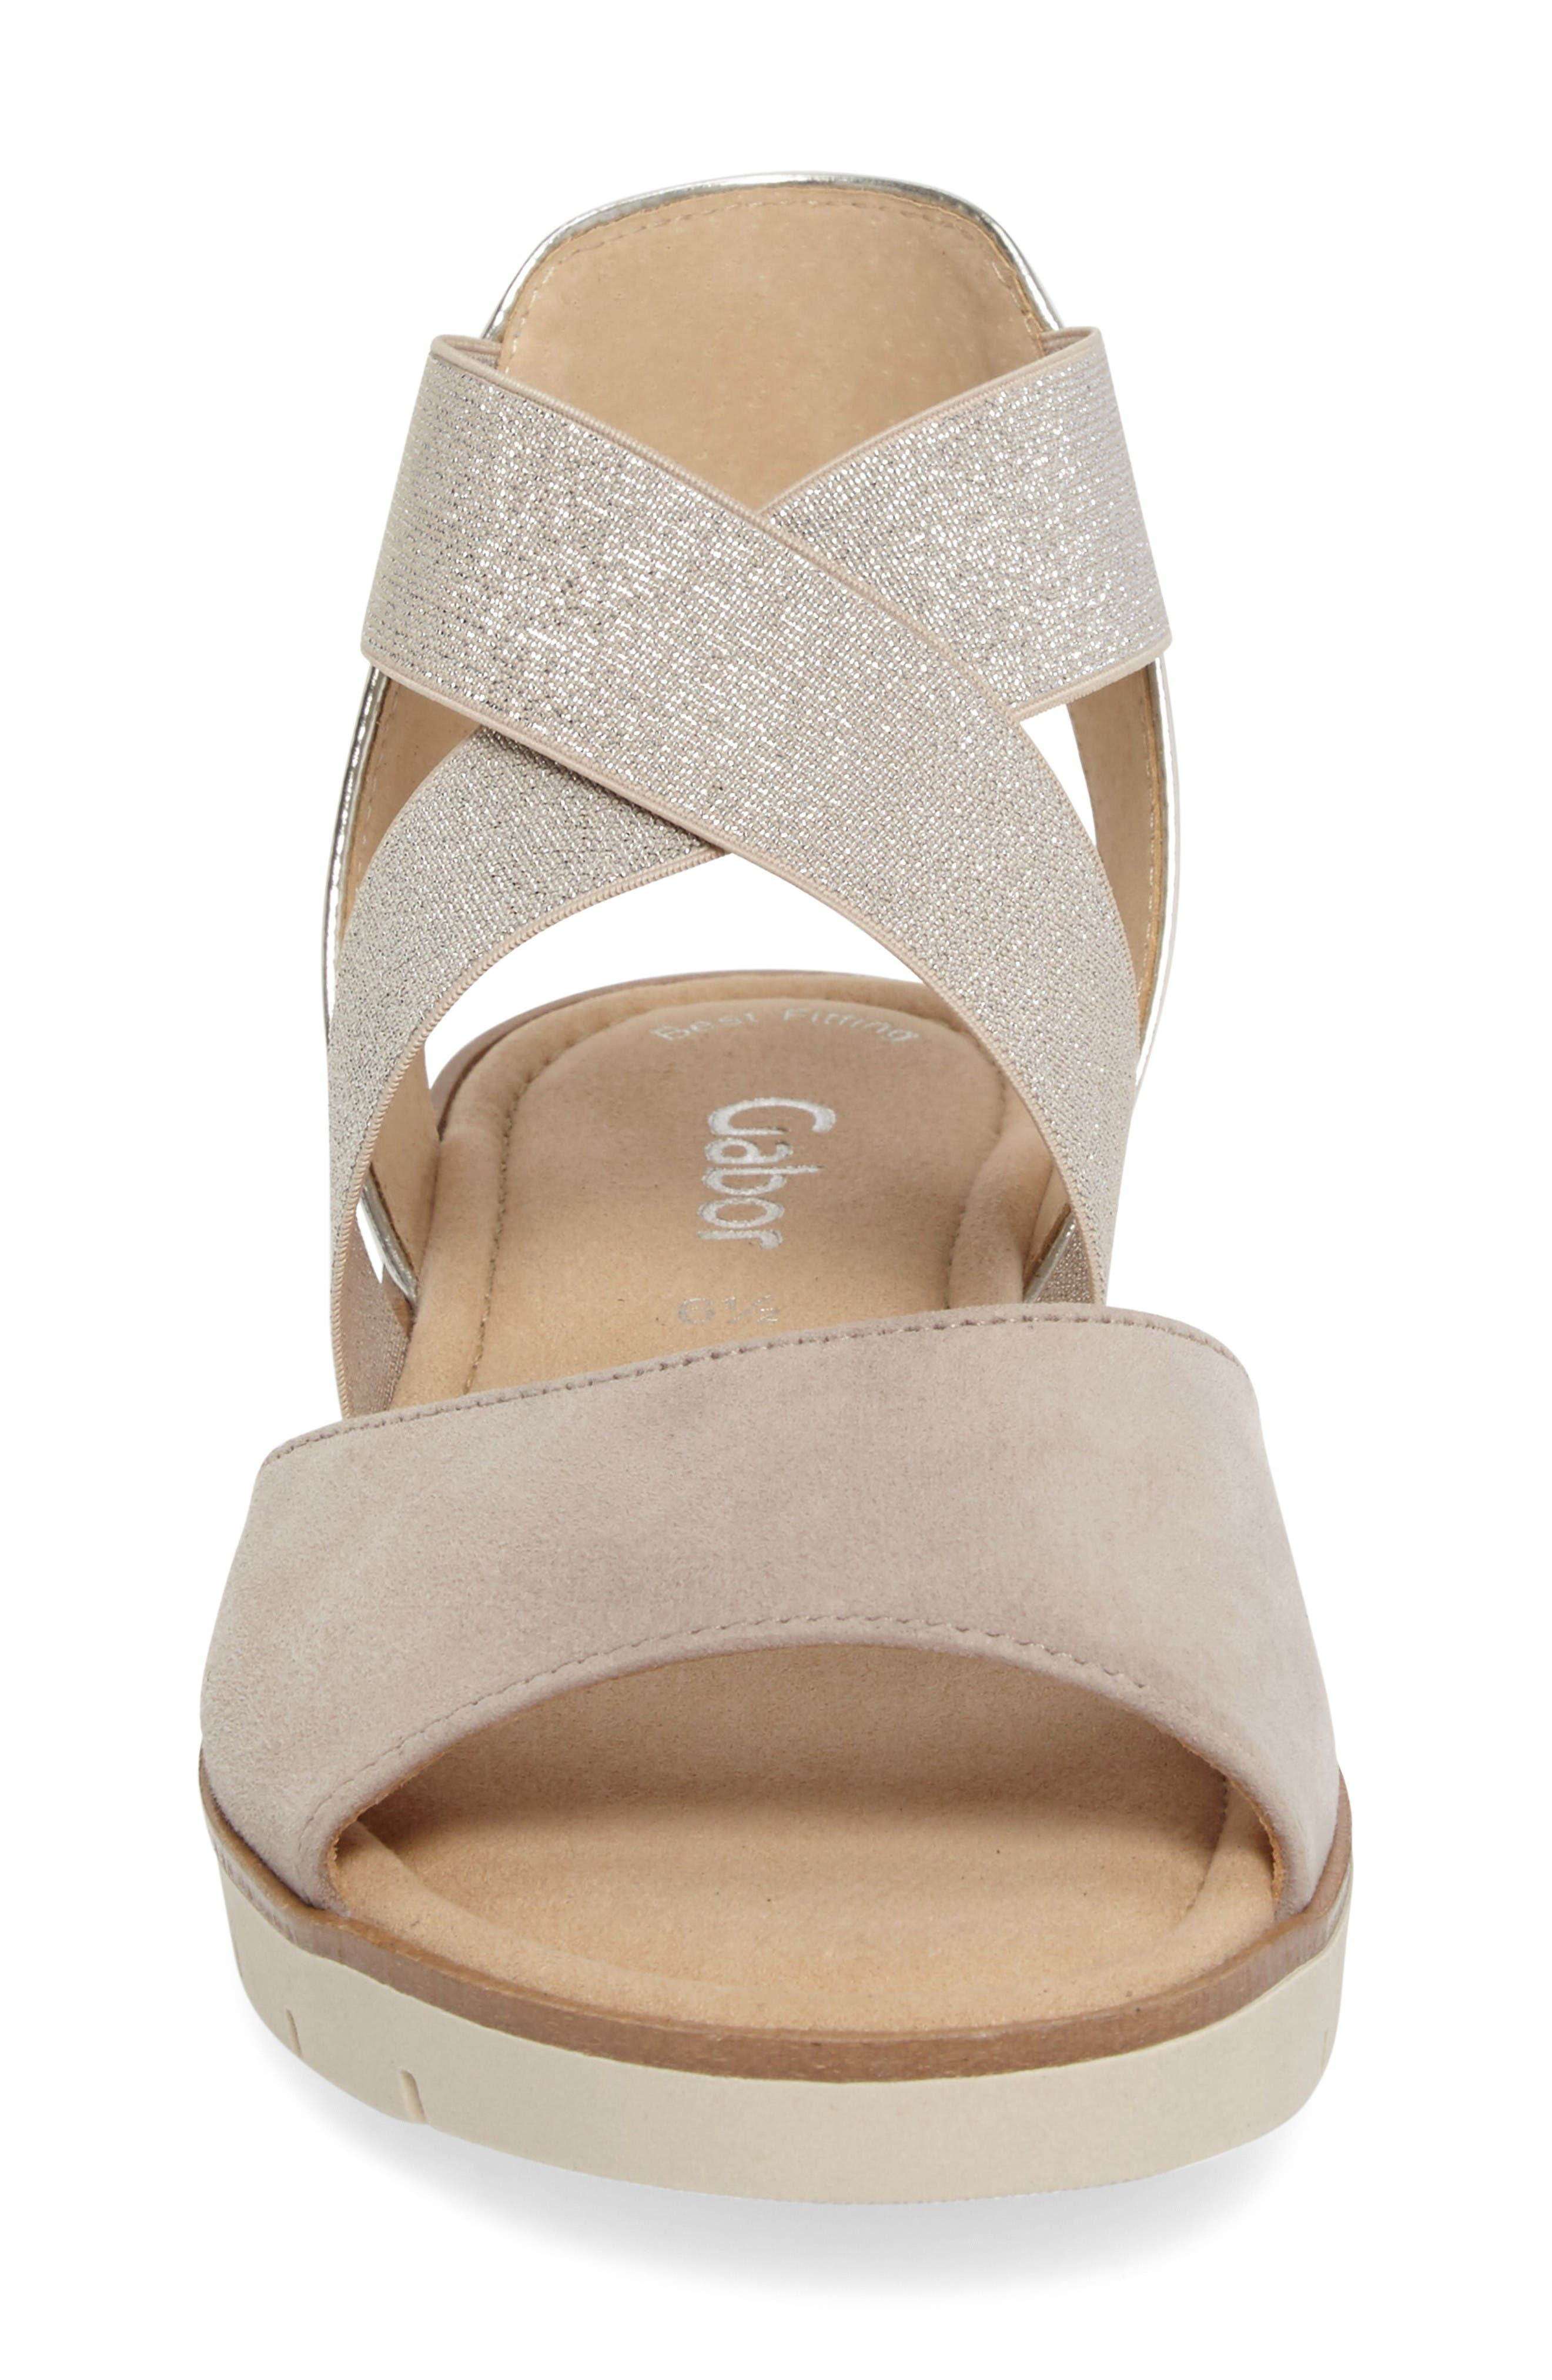 Strappy Sandal,                             Alternate thumbnail 4, color,                             Beige Leather